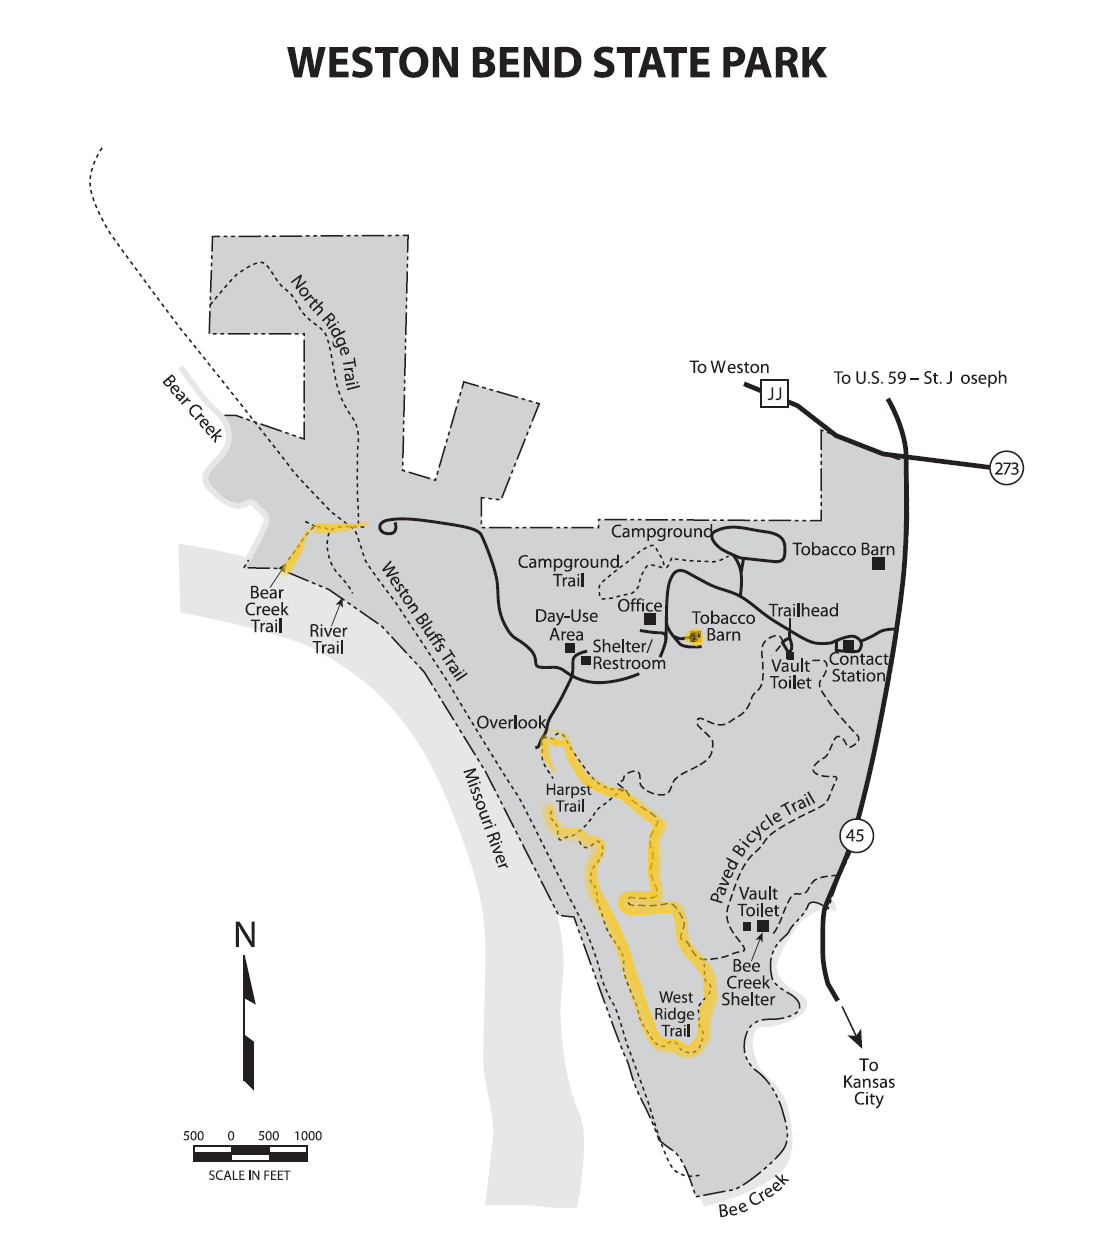 Weston Bend State Park Trail Map